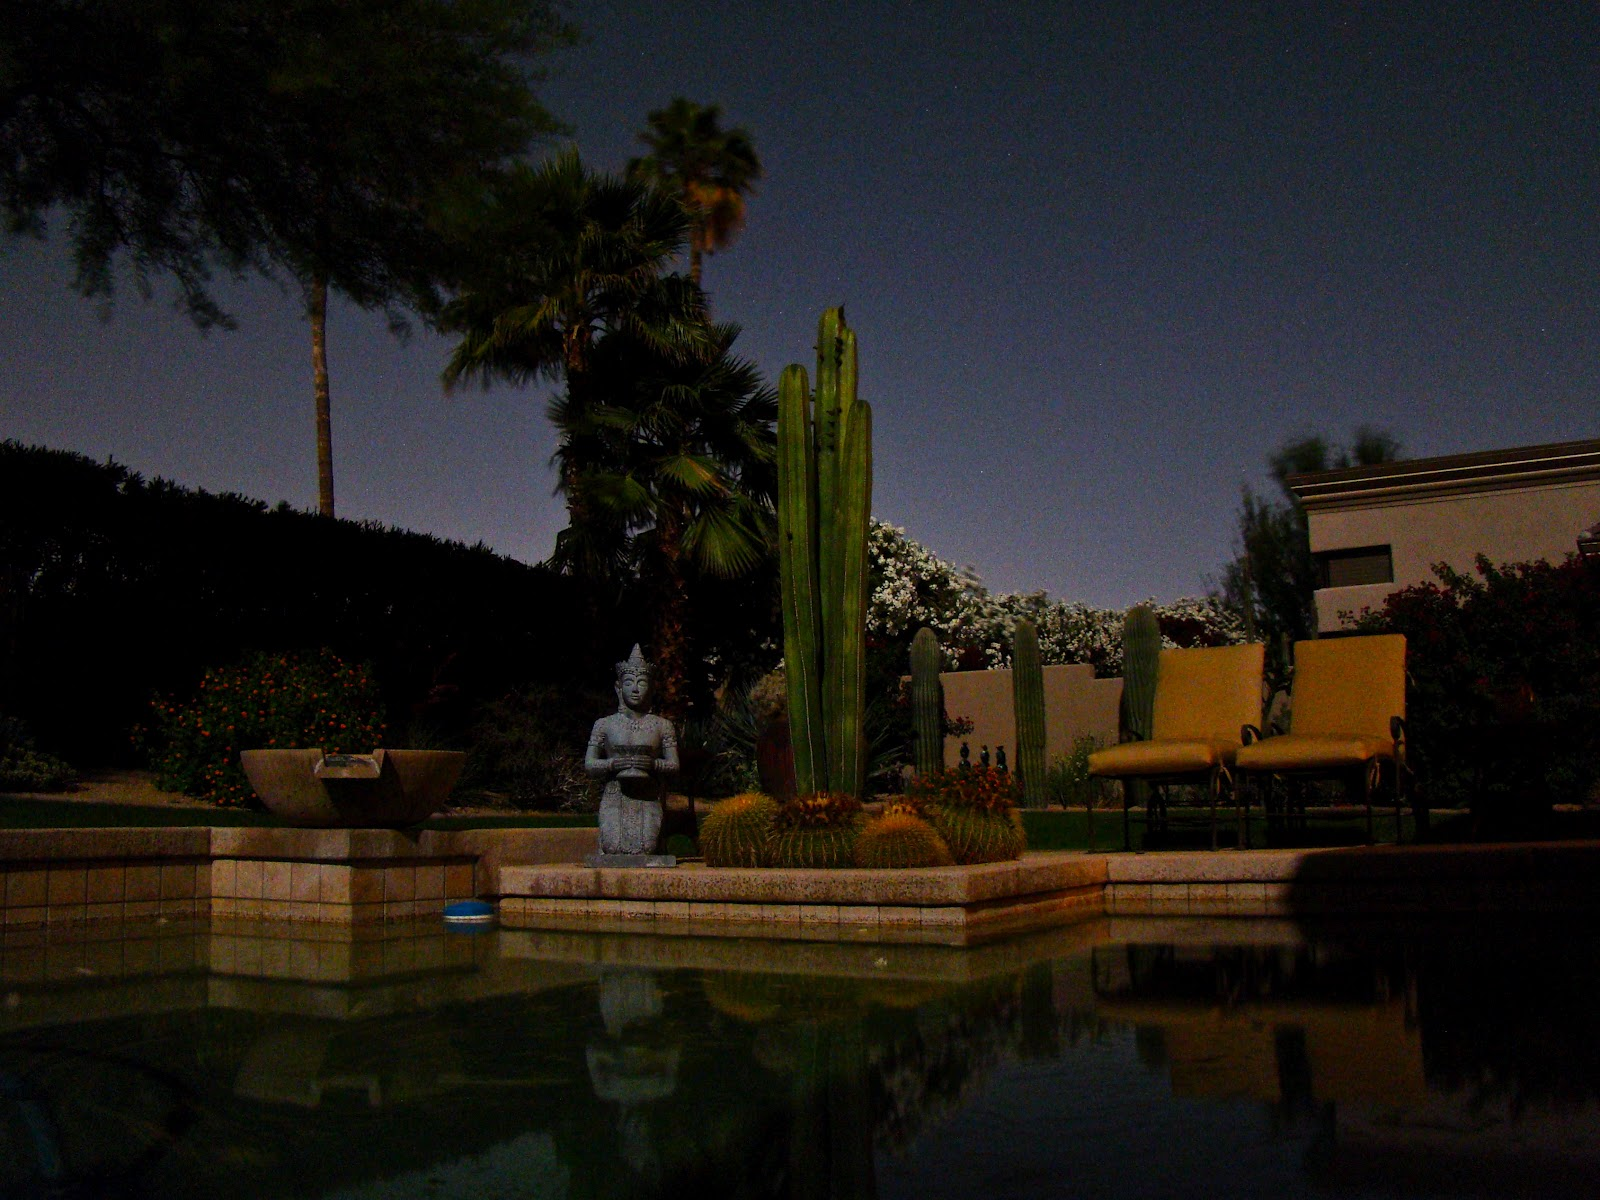 Backyard Pool At Night : Scottsdale Daily Photo Photo Backyard swimming pool at night